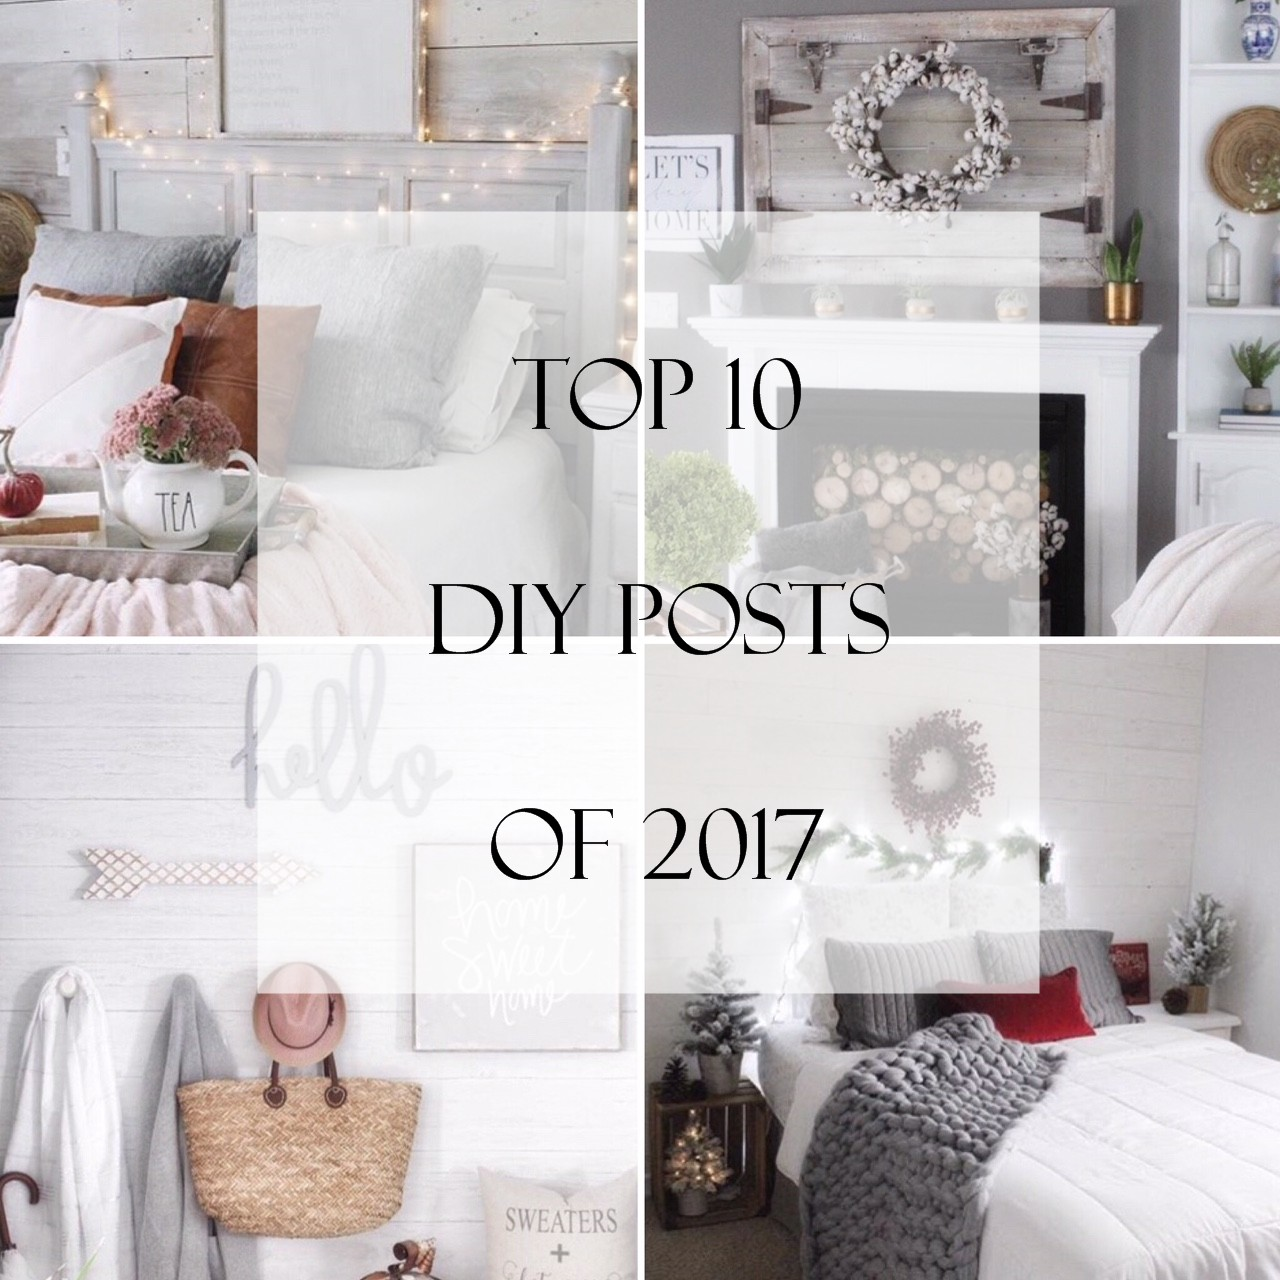 Simple Cozy Charm - Top 10 DIY posts of 2017